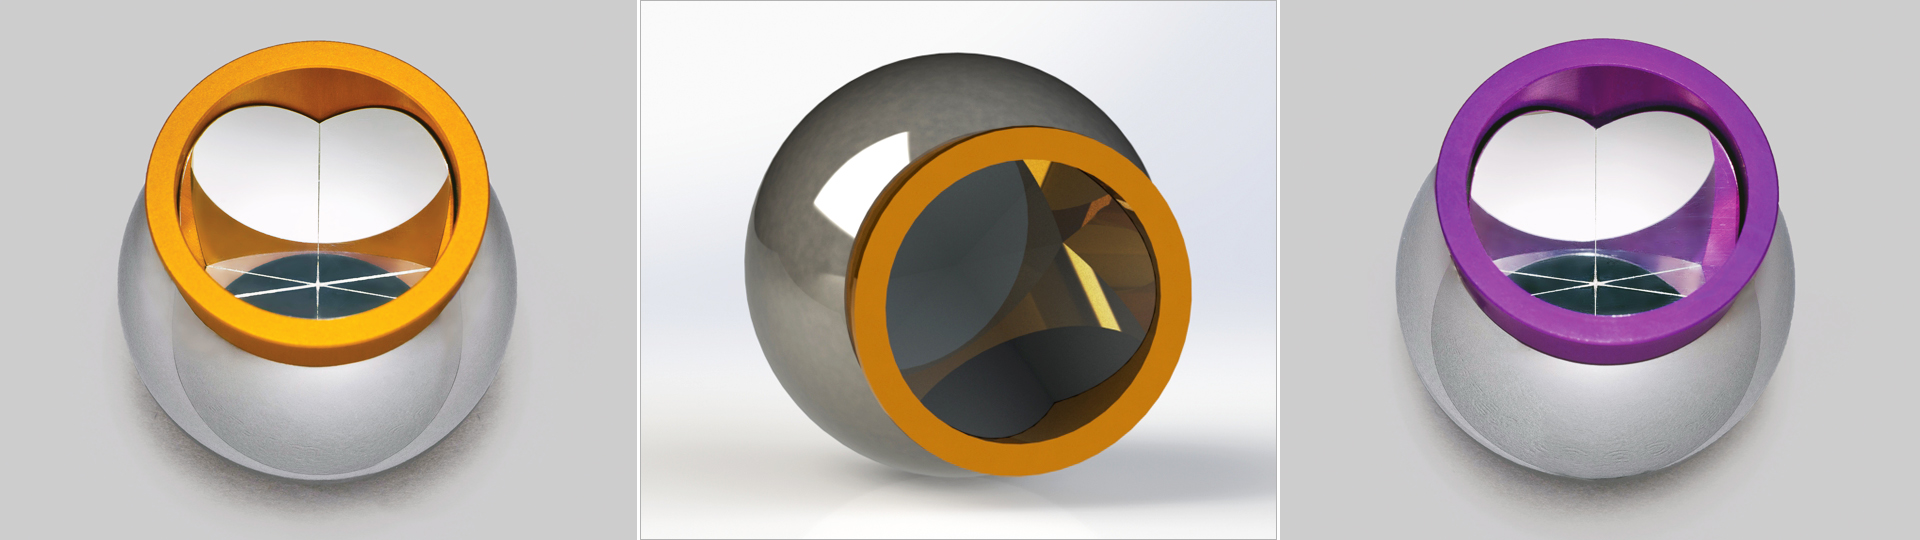 Durable Ball Mounted  Hollow Retroreflectors (DBMRs)_icon